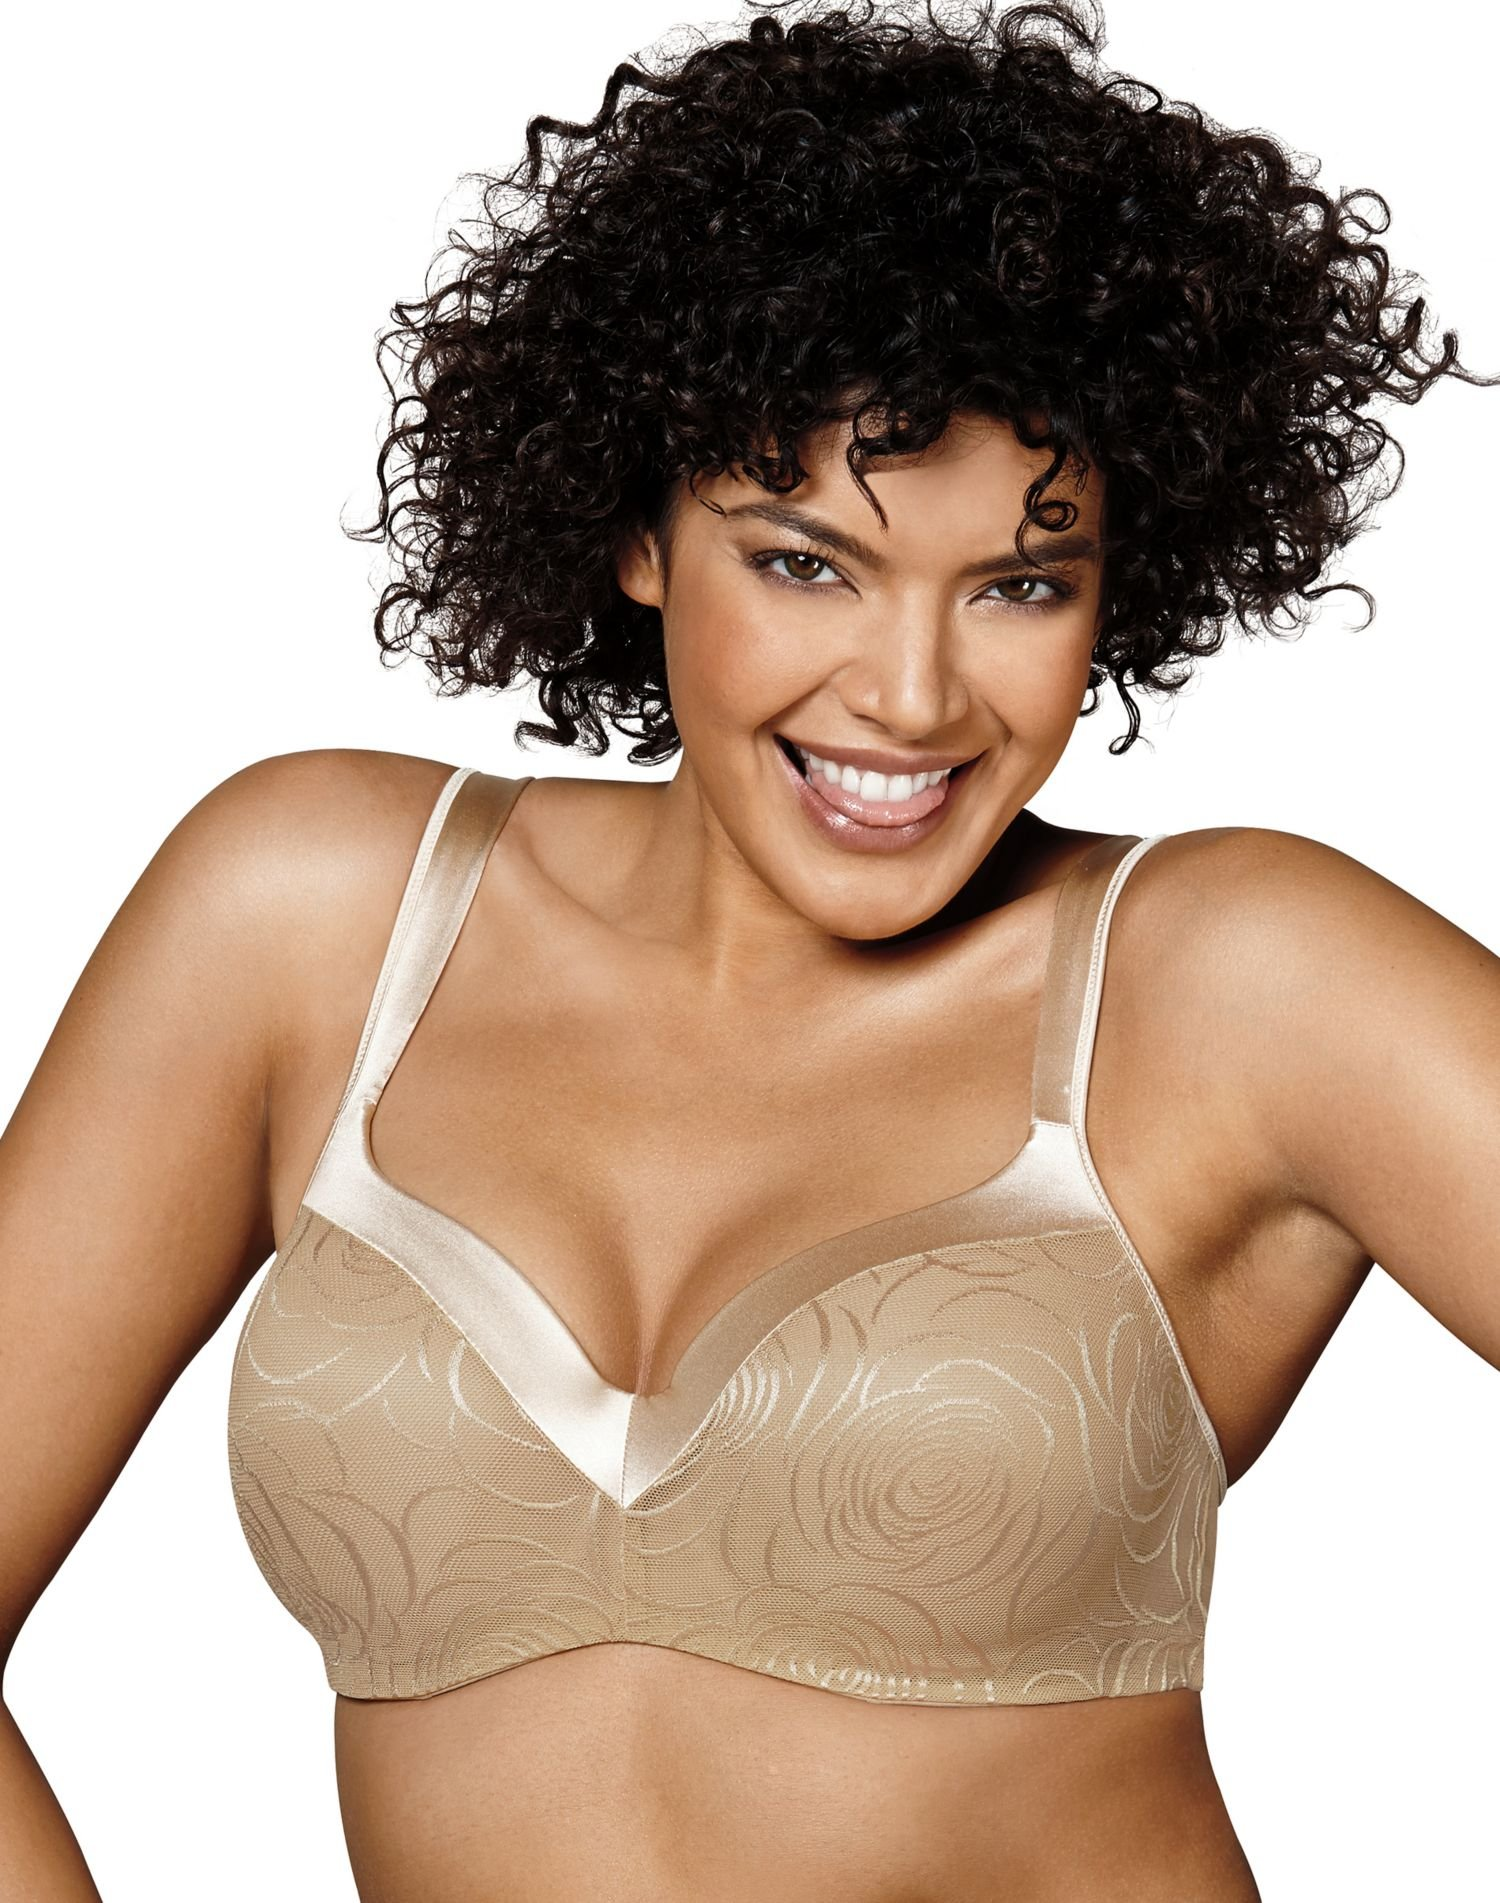 Playtex Love My Curves Body Revelation Underwire Bra Nude Rose Jacquard 42B